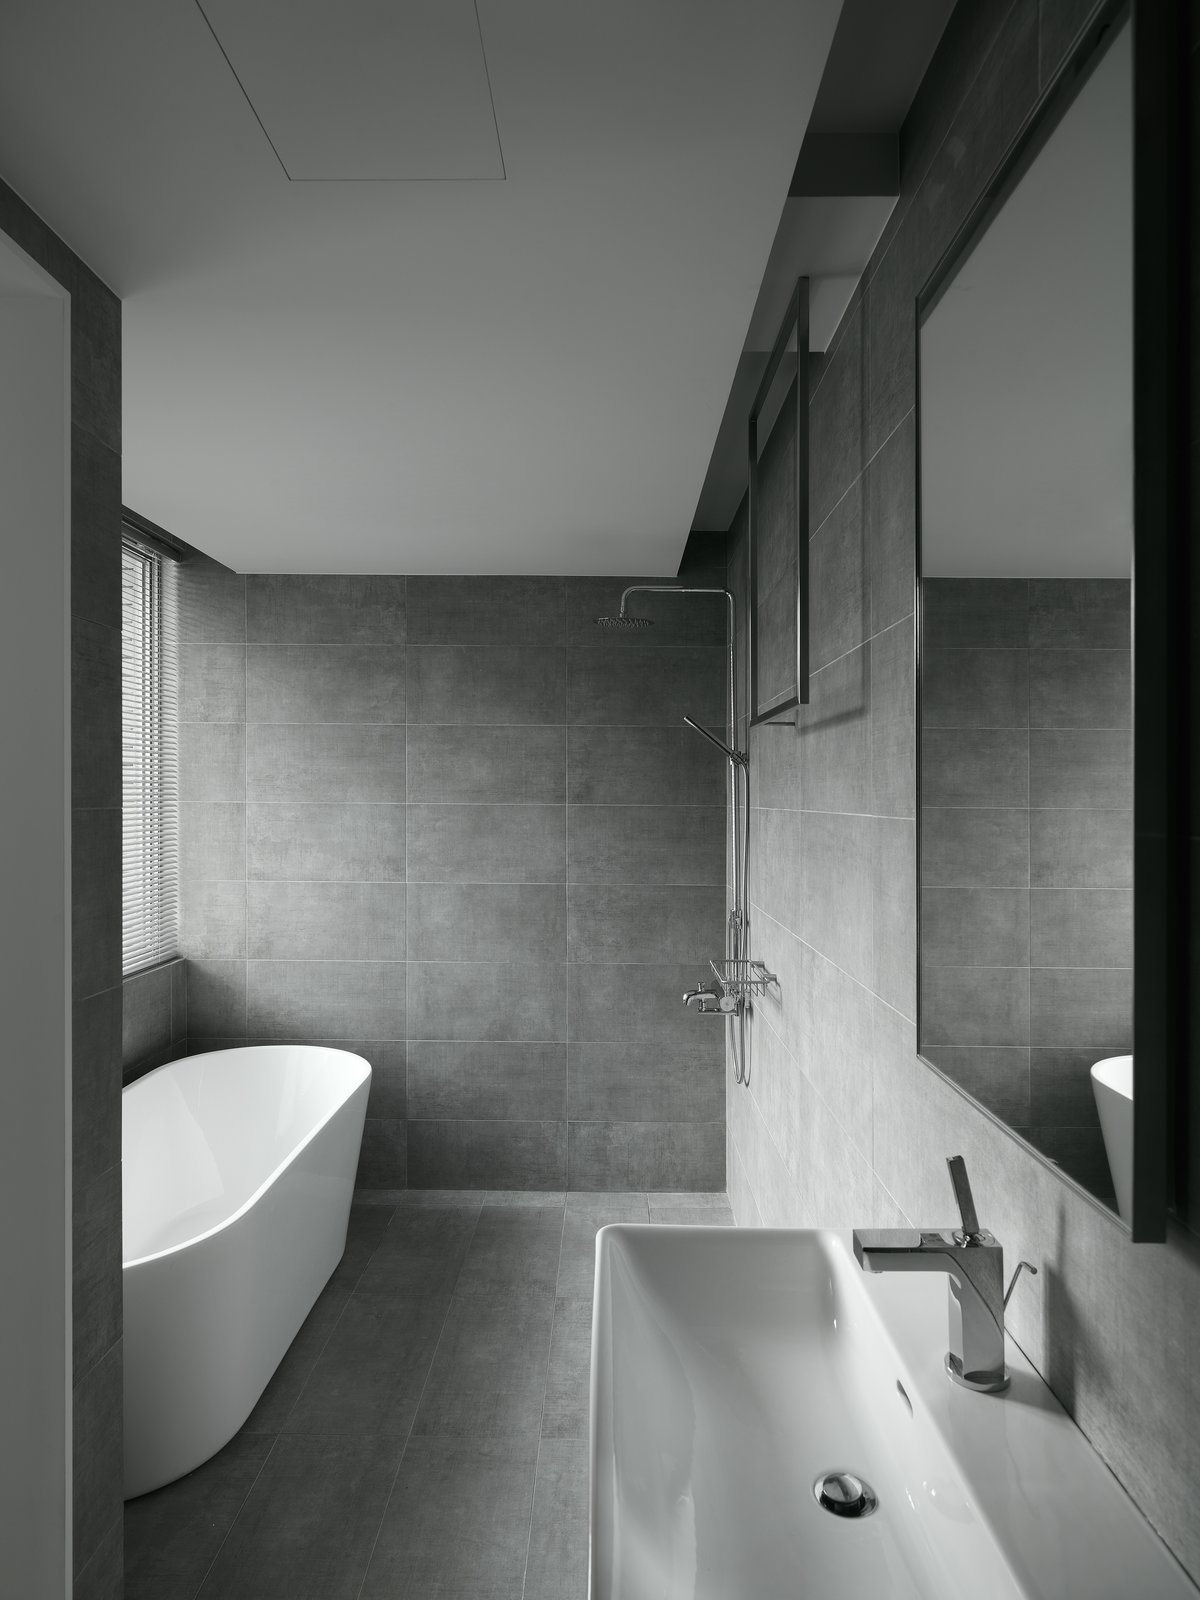 A cave-like master bathroom in response to the natural surrounding of the outside.  H Residence by Marty Chou Architecture